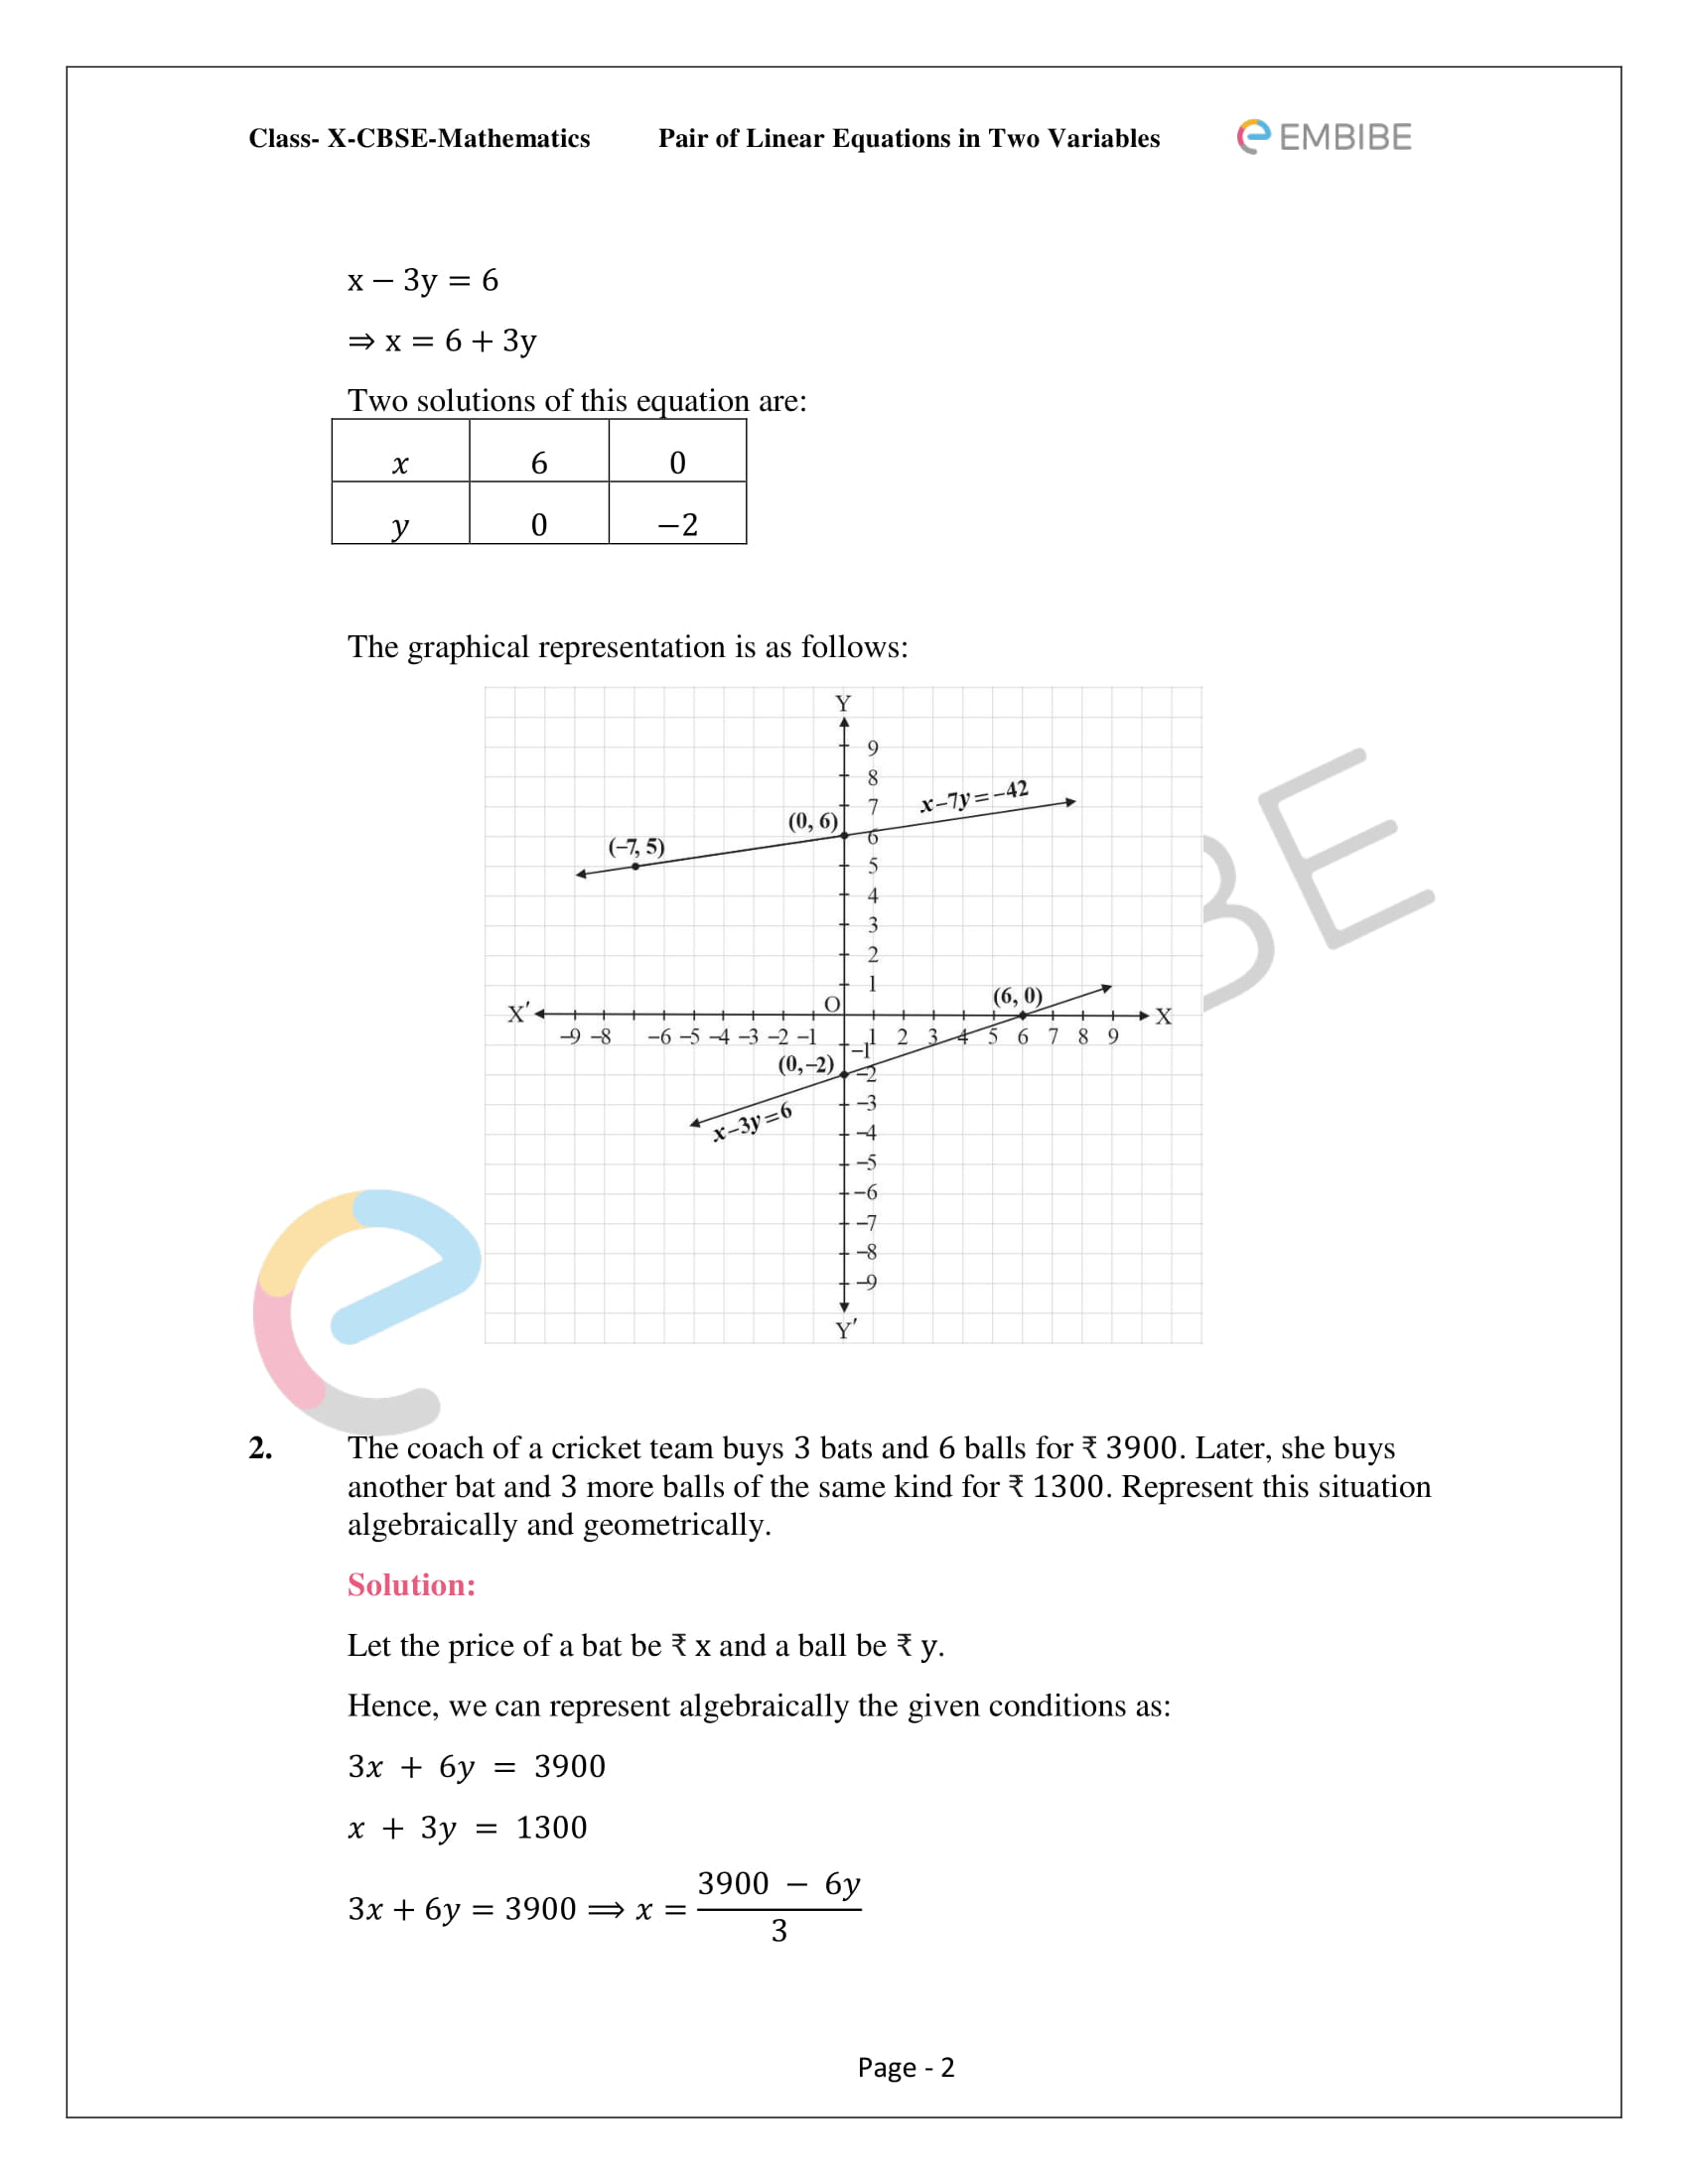 CBSE NCERT Solutions For Class 10 Maths Chapter 3 - Pair of Linear Equations In Two Variables - 2